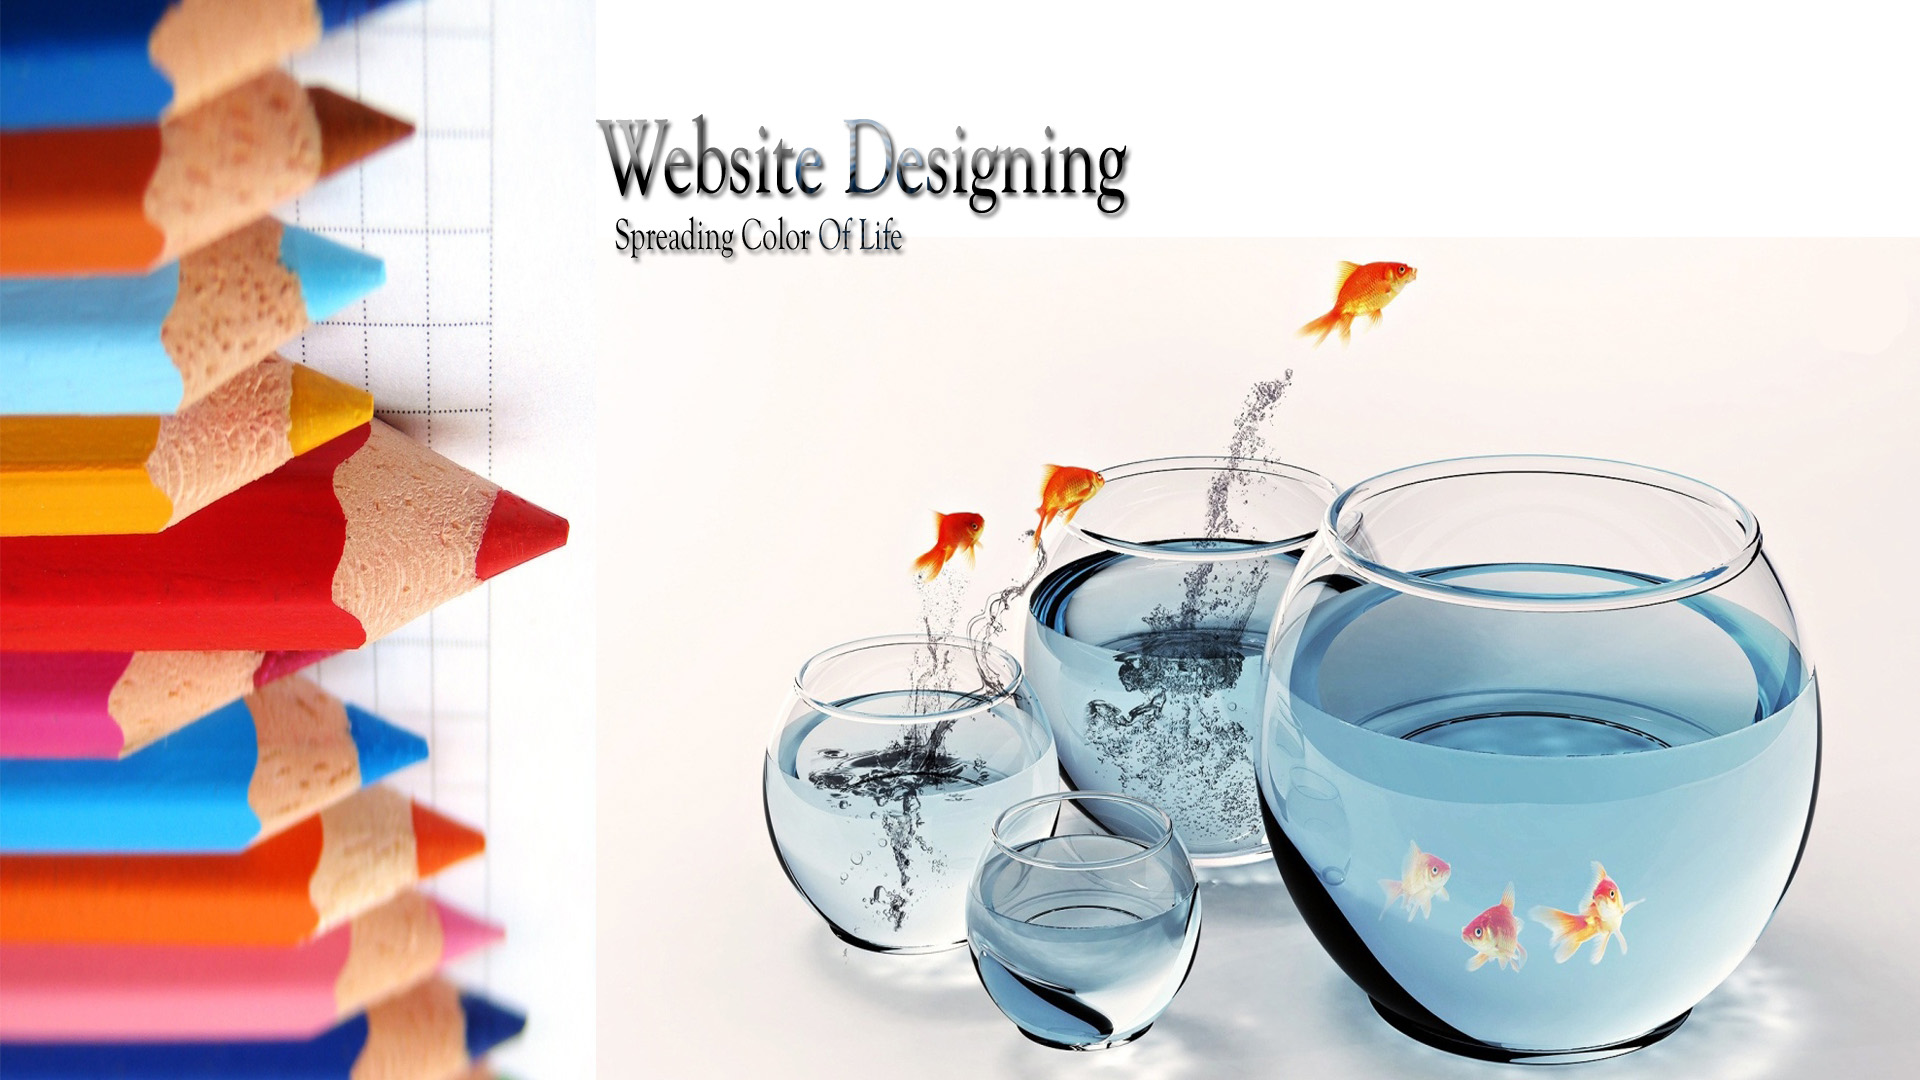 Website Development Company Delhi, India| Website Design Company